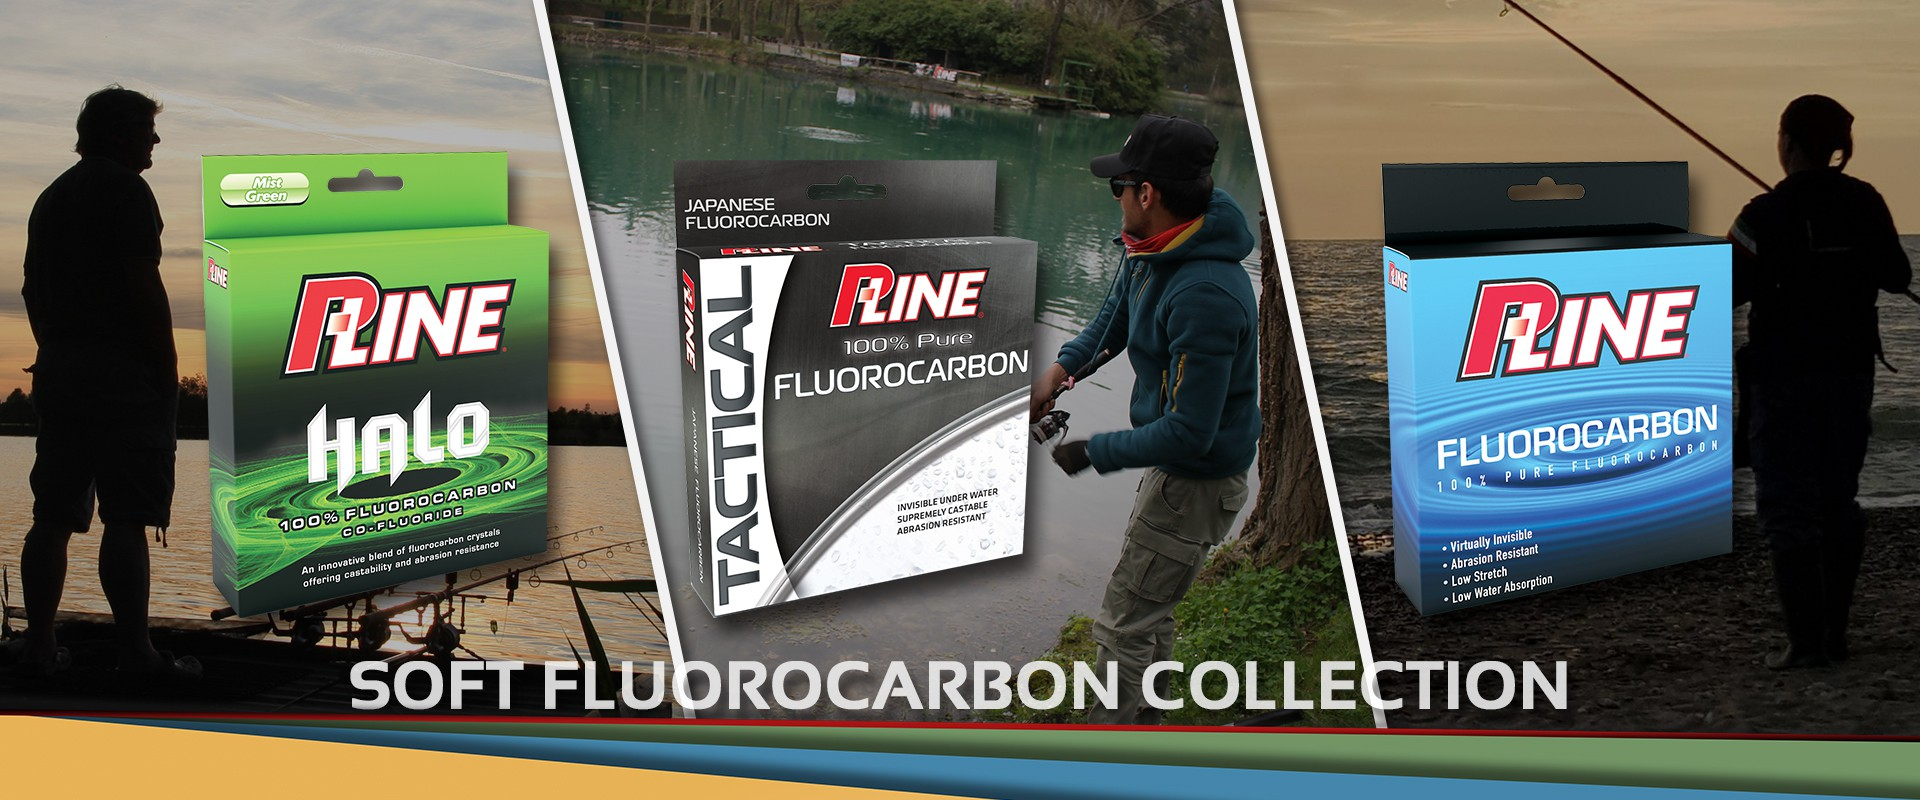 P-Line Soft Fluorocarbon Halo, Tactical and Fluorocarbon Soft